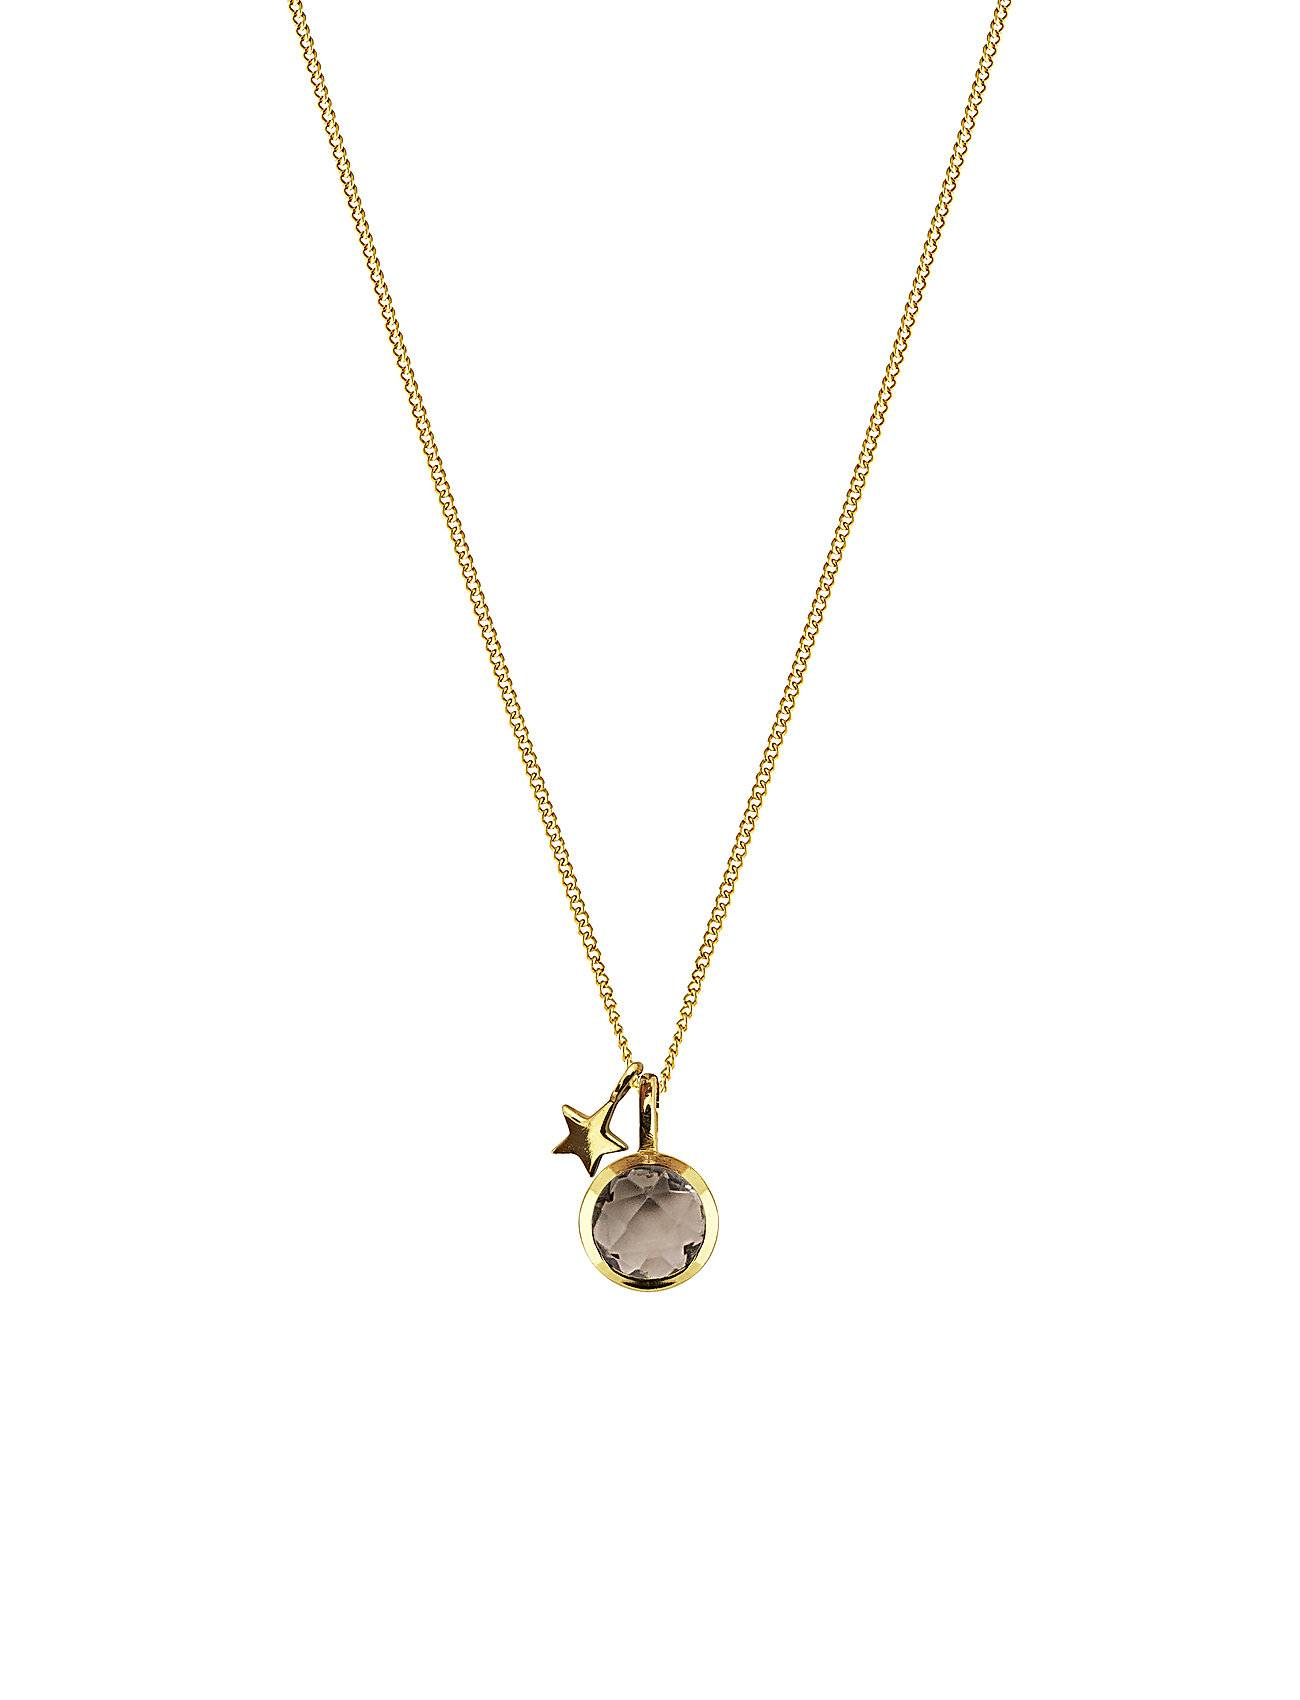 Syster P Priscilla Necklace Gold Smokey